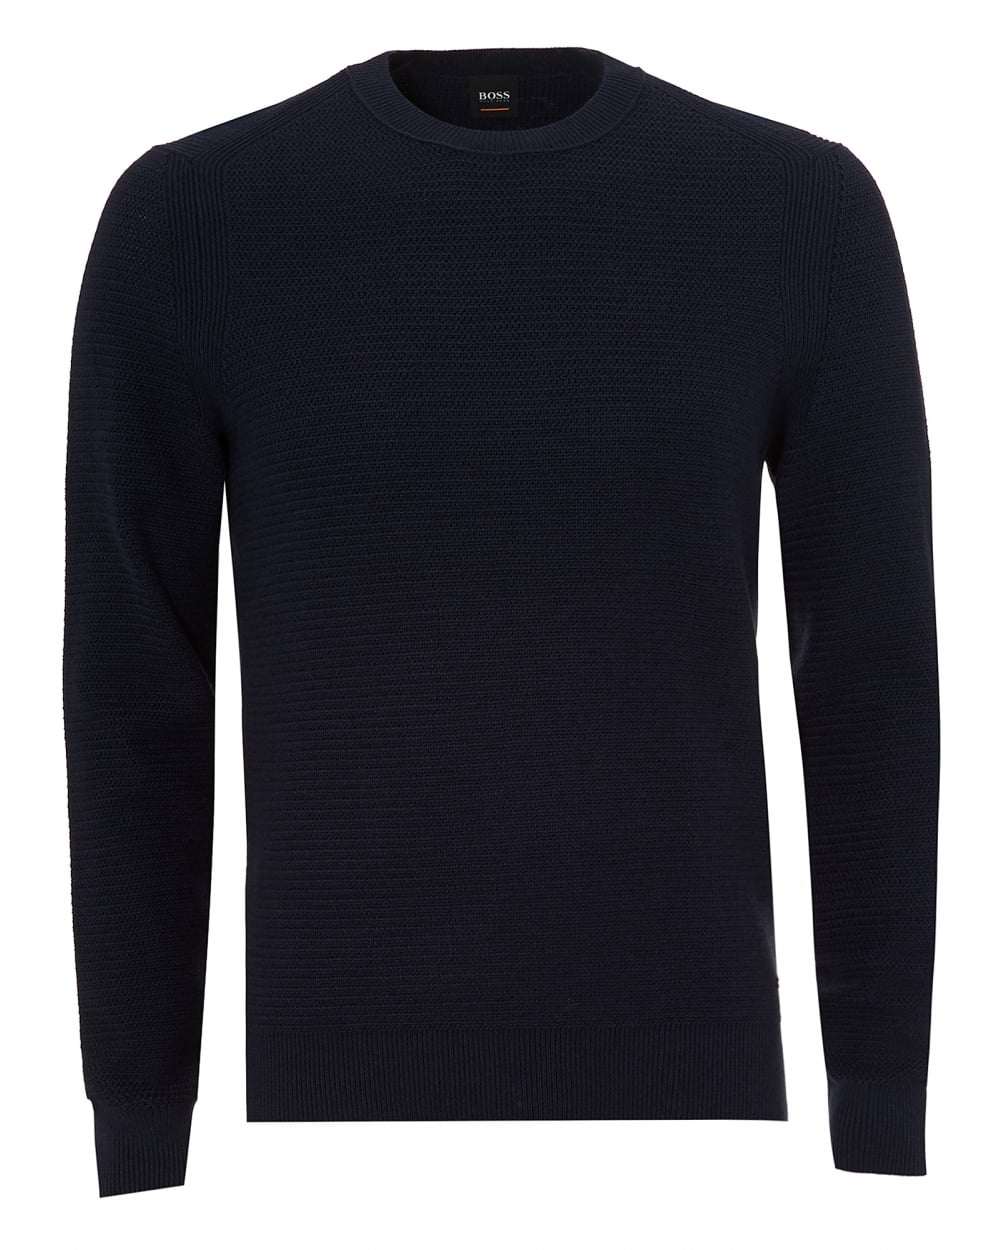 hugo boss orange mens kelvor jumper navy waffle knit sweater. Black Bedroom Furniture Sets. Home Design Ideas